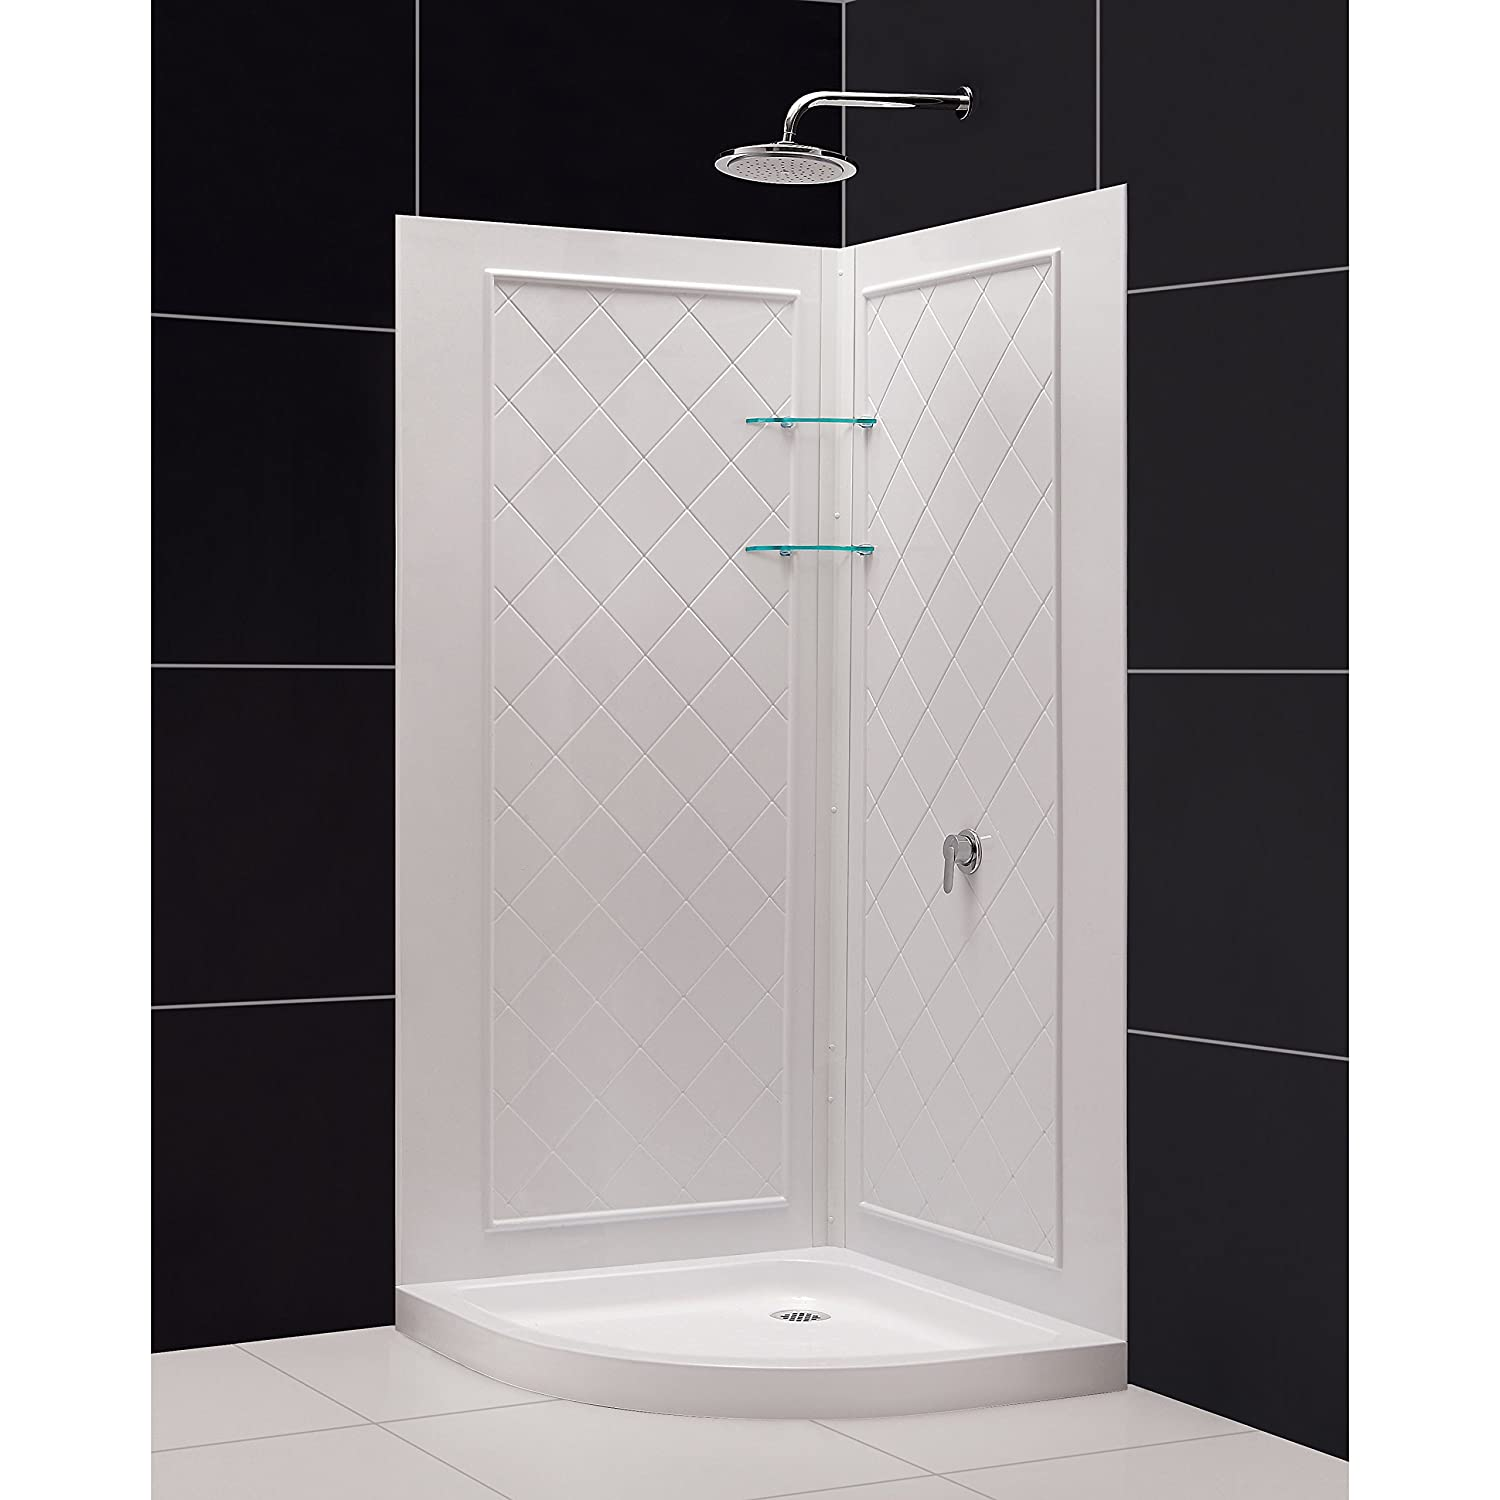 W Kit With Corner Sliding Shower Enclosure In Chrome White Acrylic Base And  Backwalls Shower Doors Amazoncom